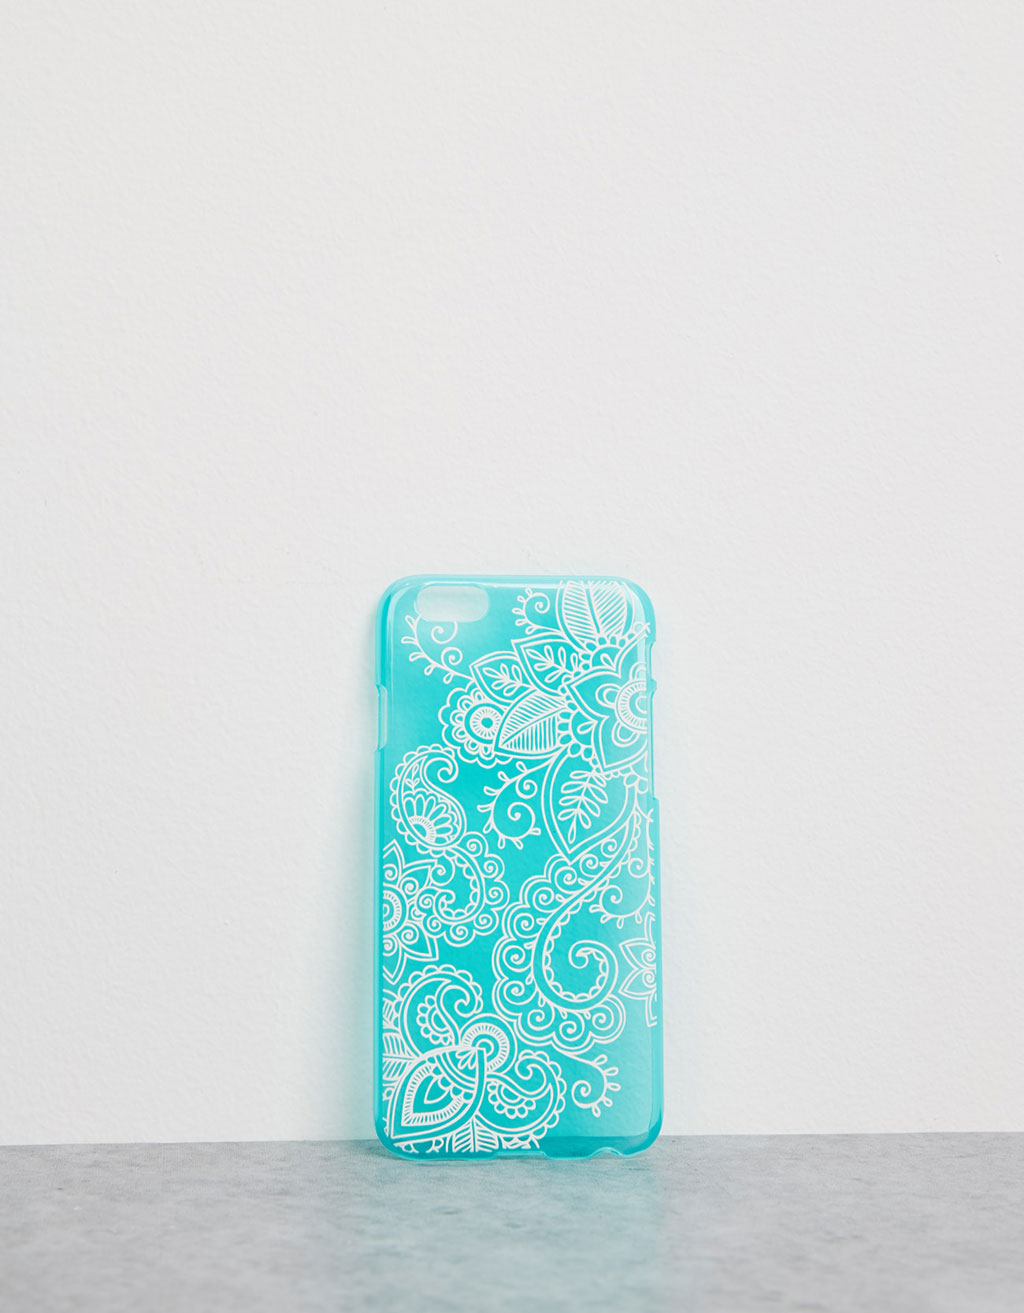 Carcasa relieve fondo azul iPhone 6/6s